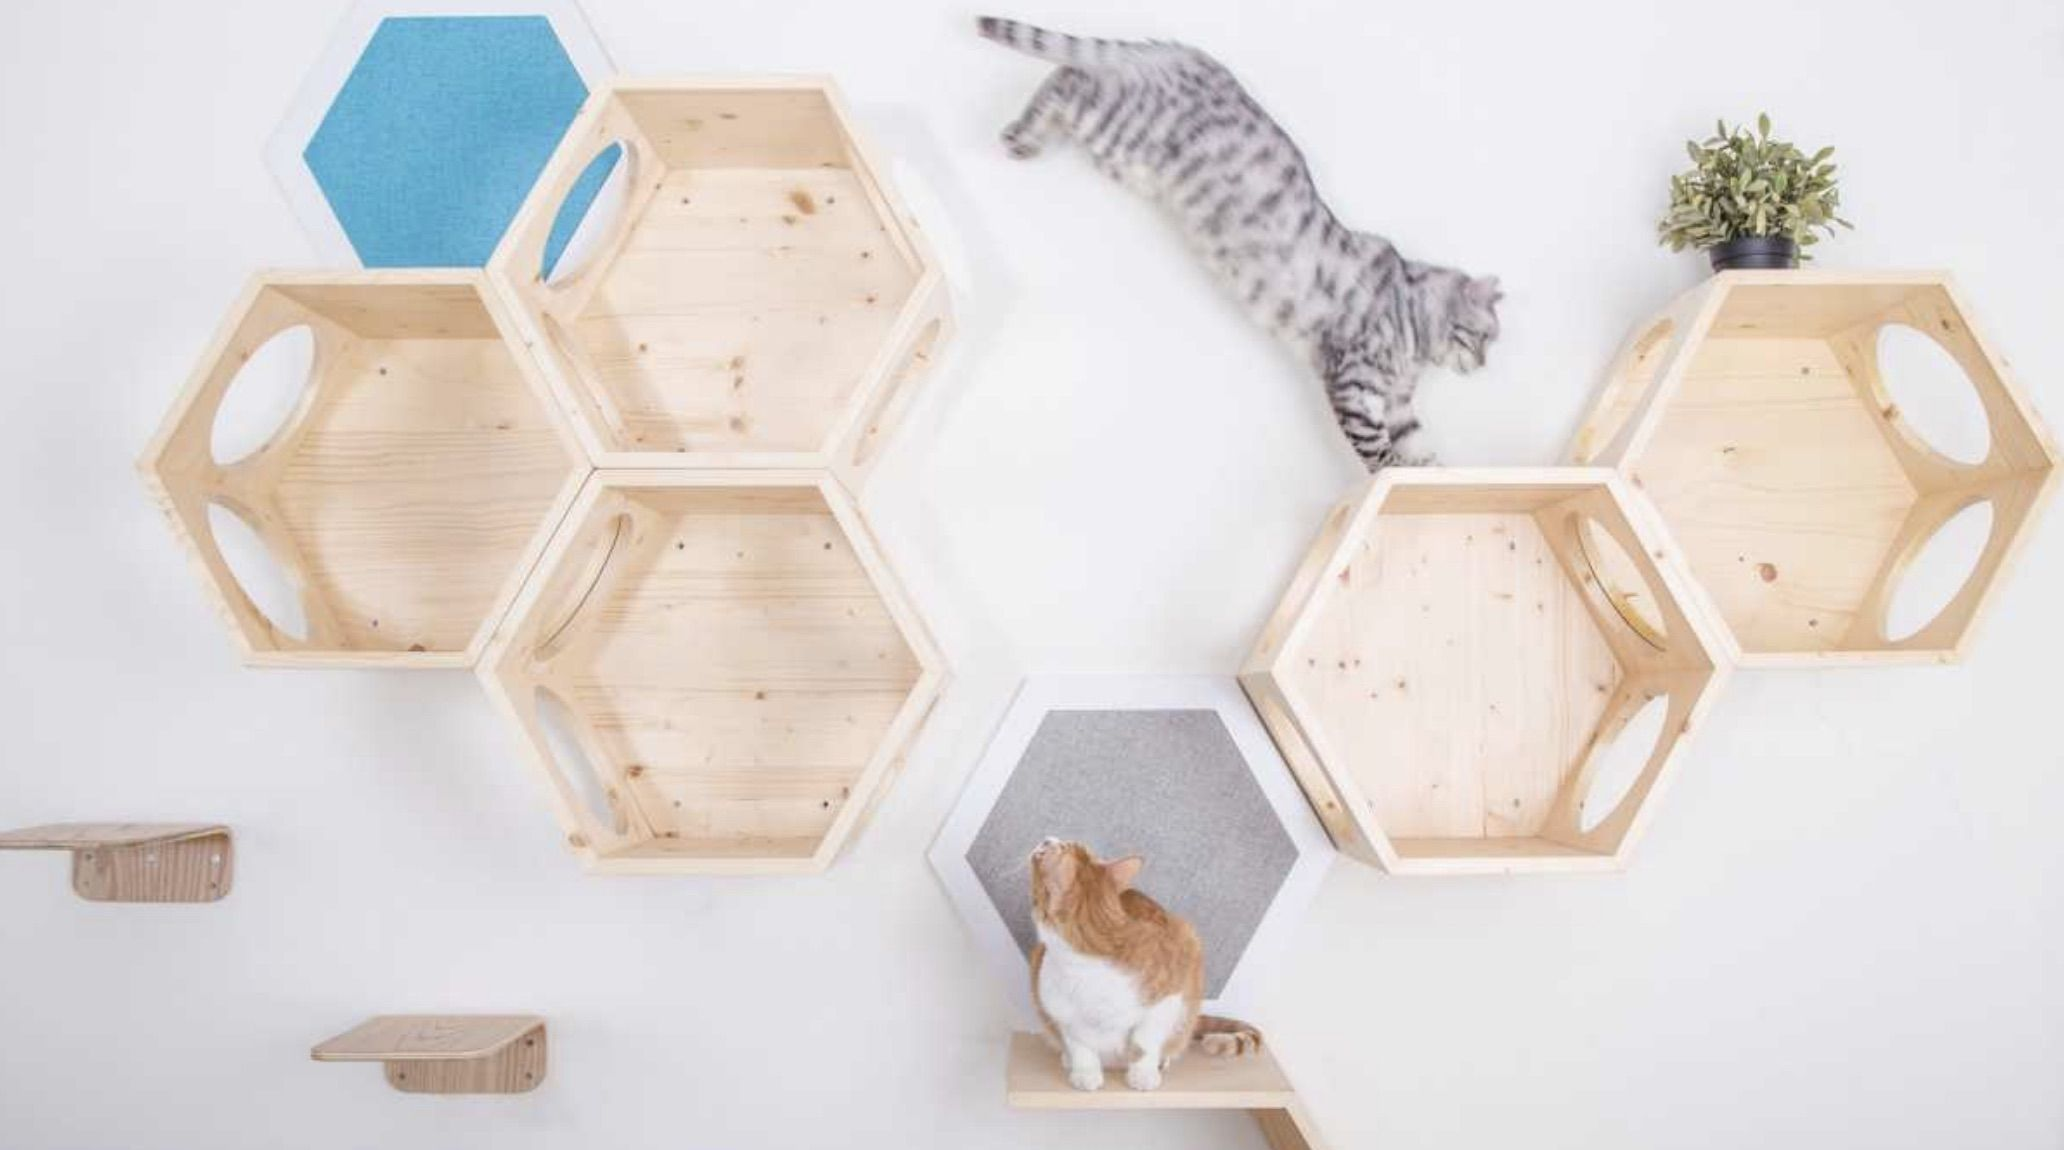 991addd7cfa5 Go Vertical with Cat Wall Shelf Systems - CatsPlay Superstore | Cats ...